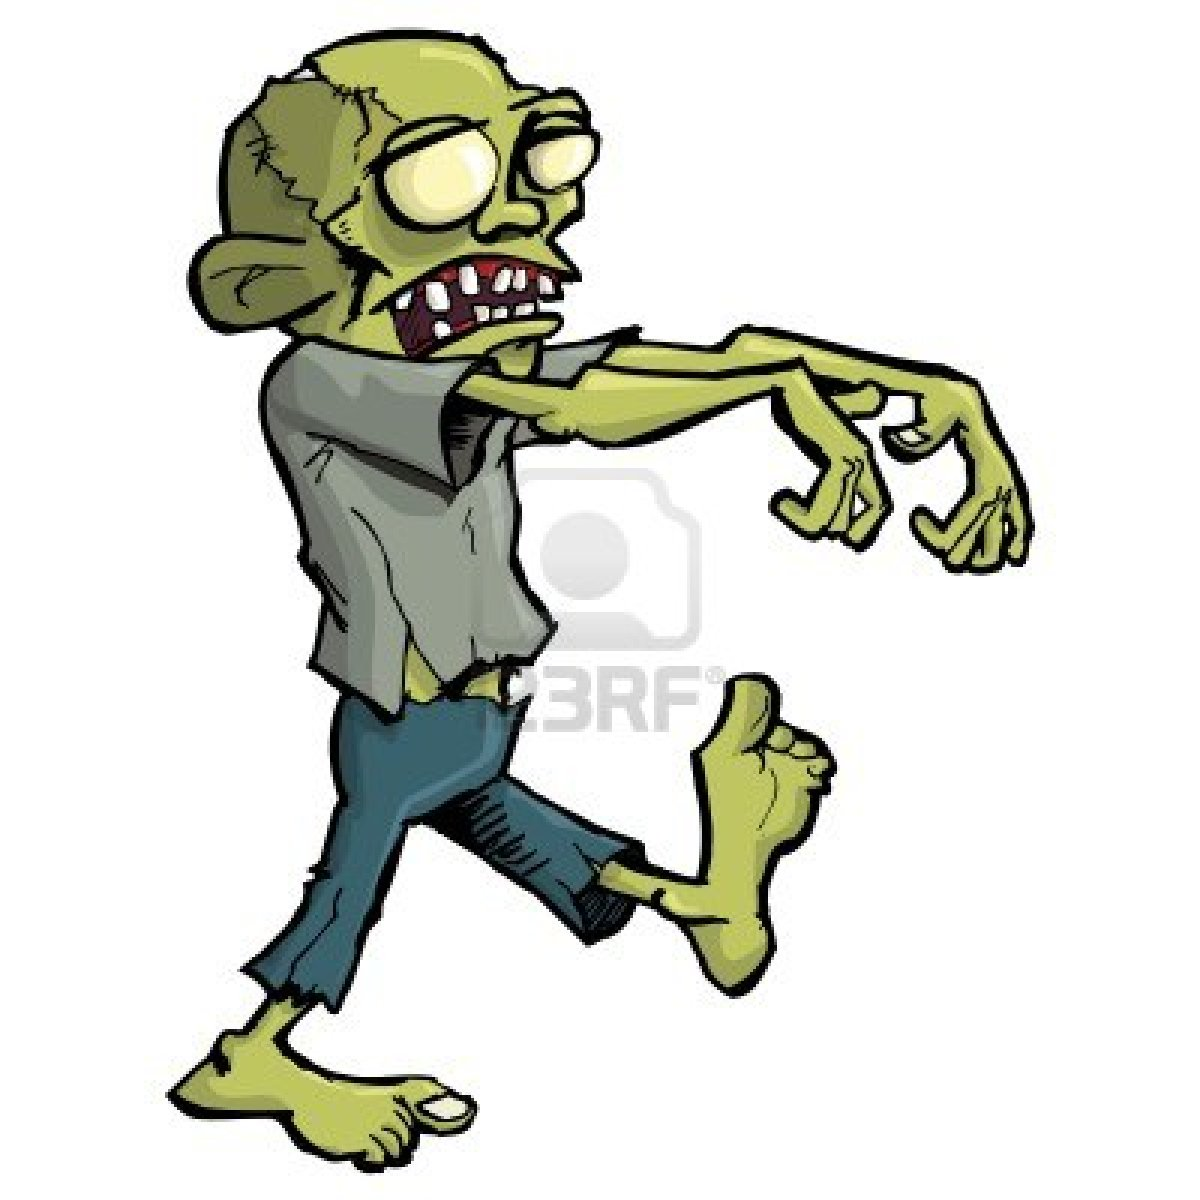 Zombie cartoon Stock Photos and Images. 15,791 Zombie ...